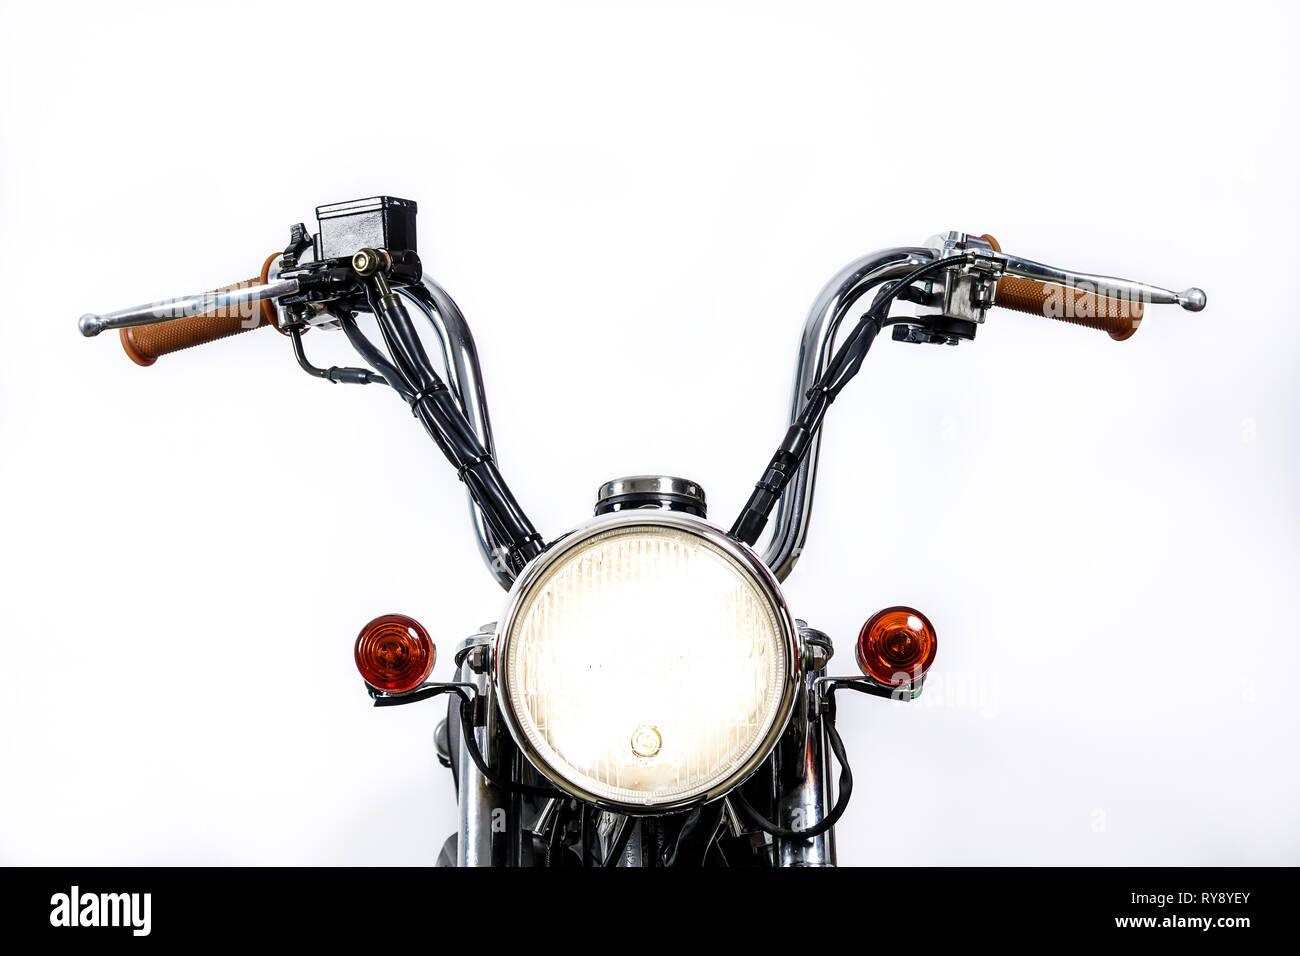 Close up of headlight on vintage motorcycle. Custom chopper / scrambler motocross. Retro motorbike on white background. Blank copy space for text. - Stock Image